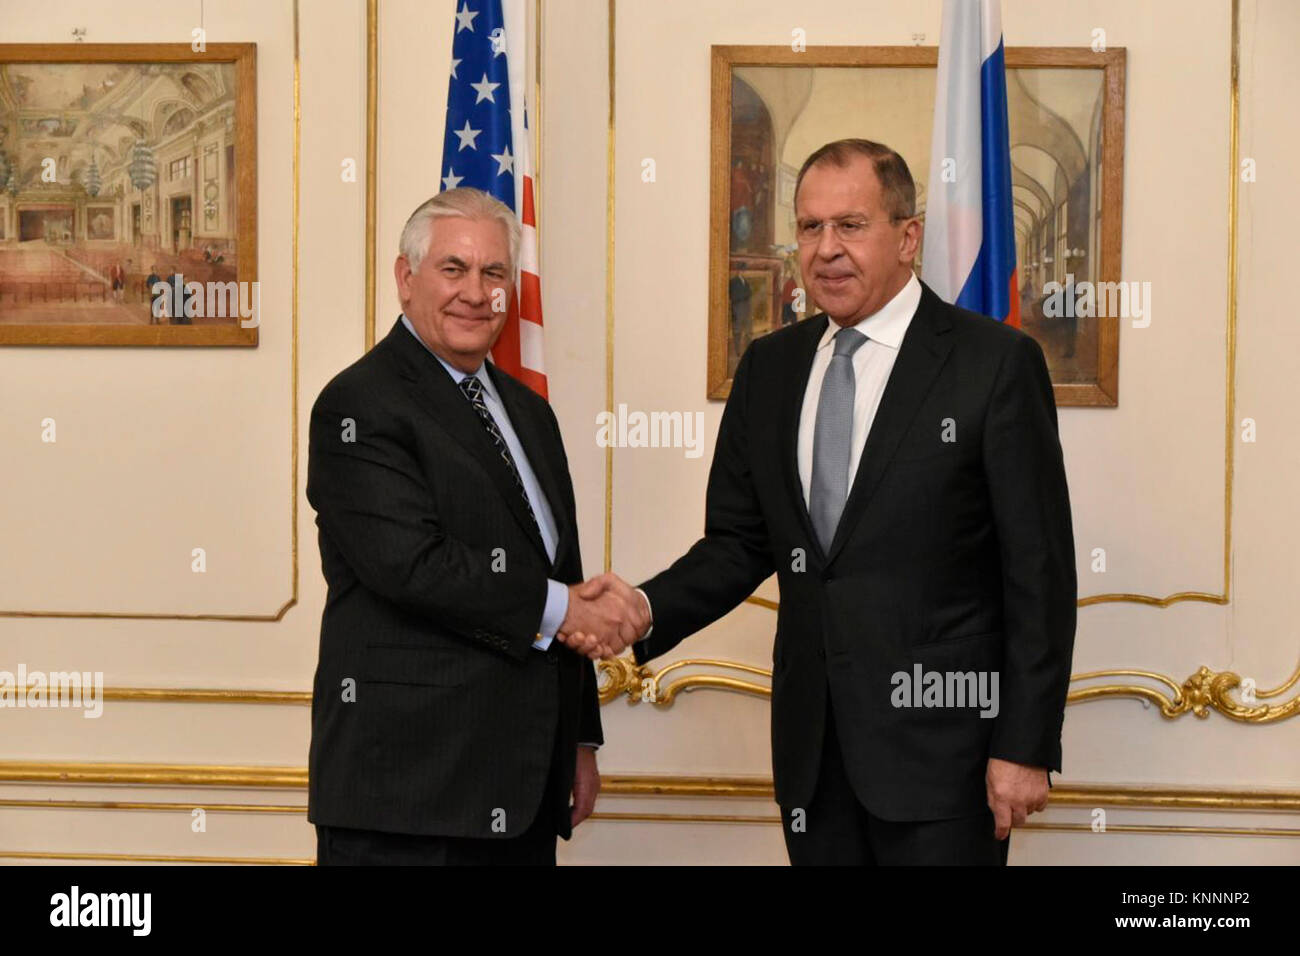 Secretary Tillerson Meets With Russian Foreign Minister Lavrov at OSCE in Austria - Stock Image